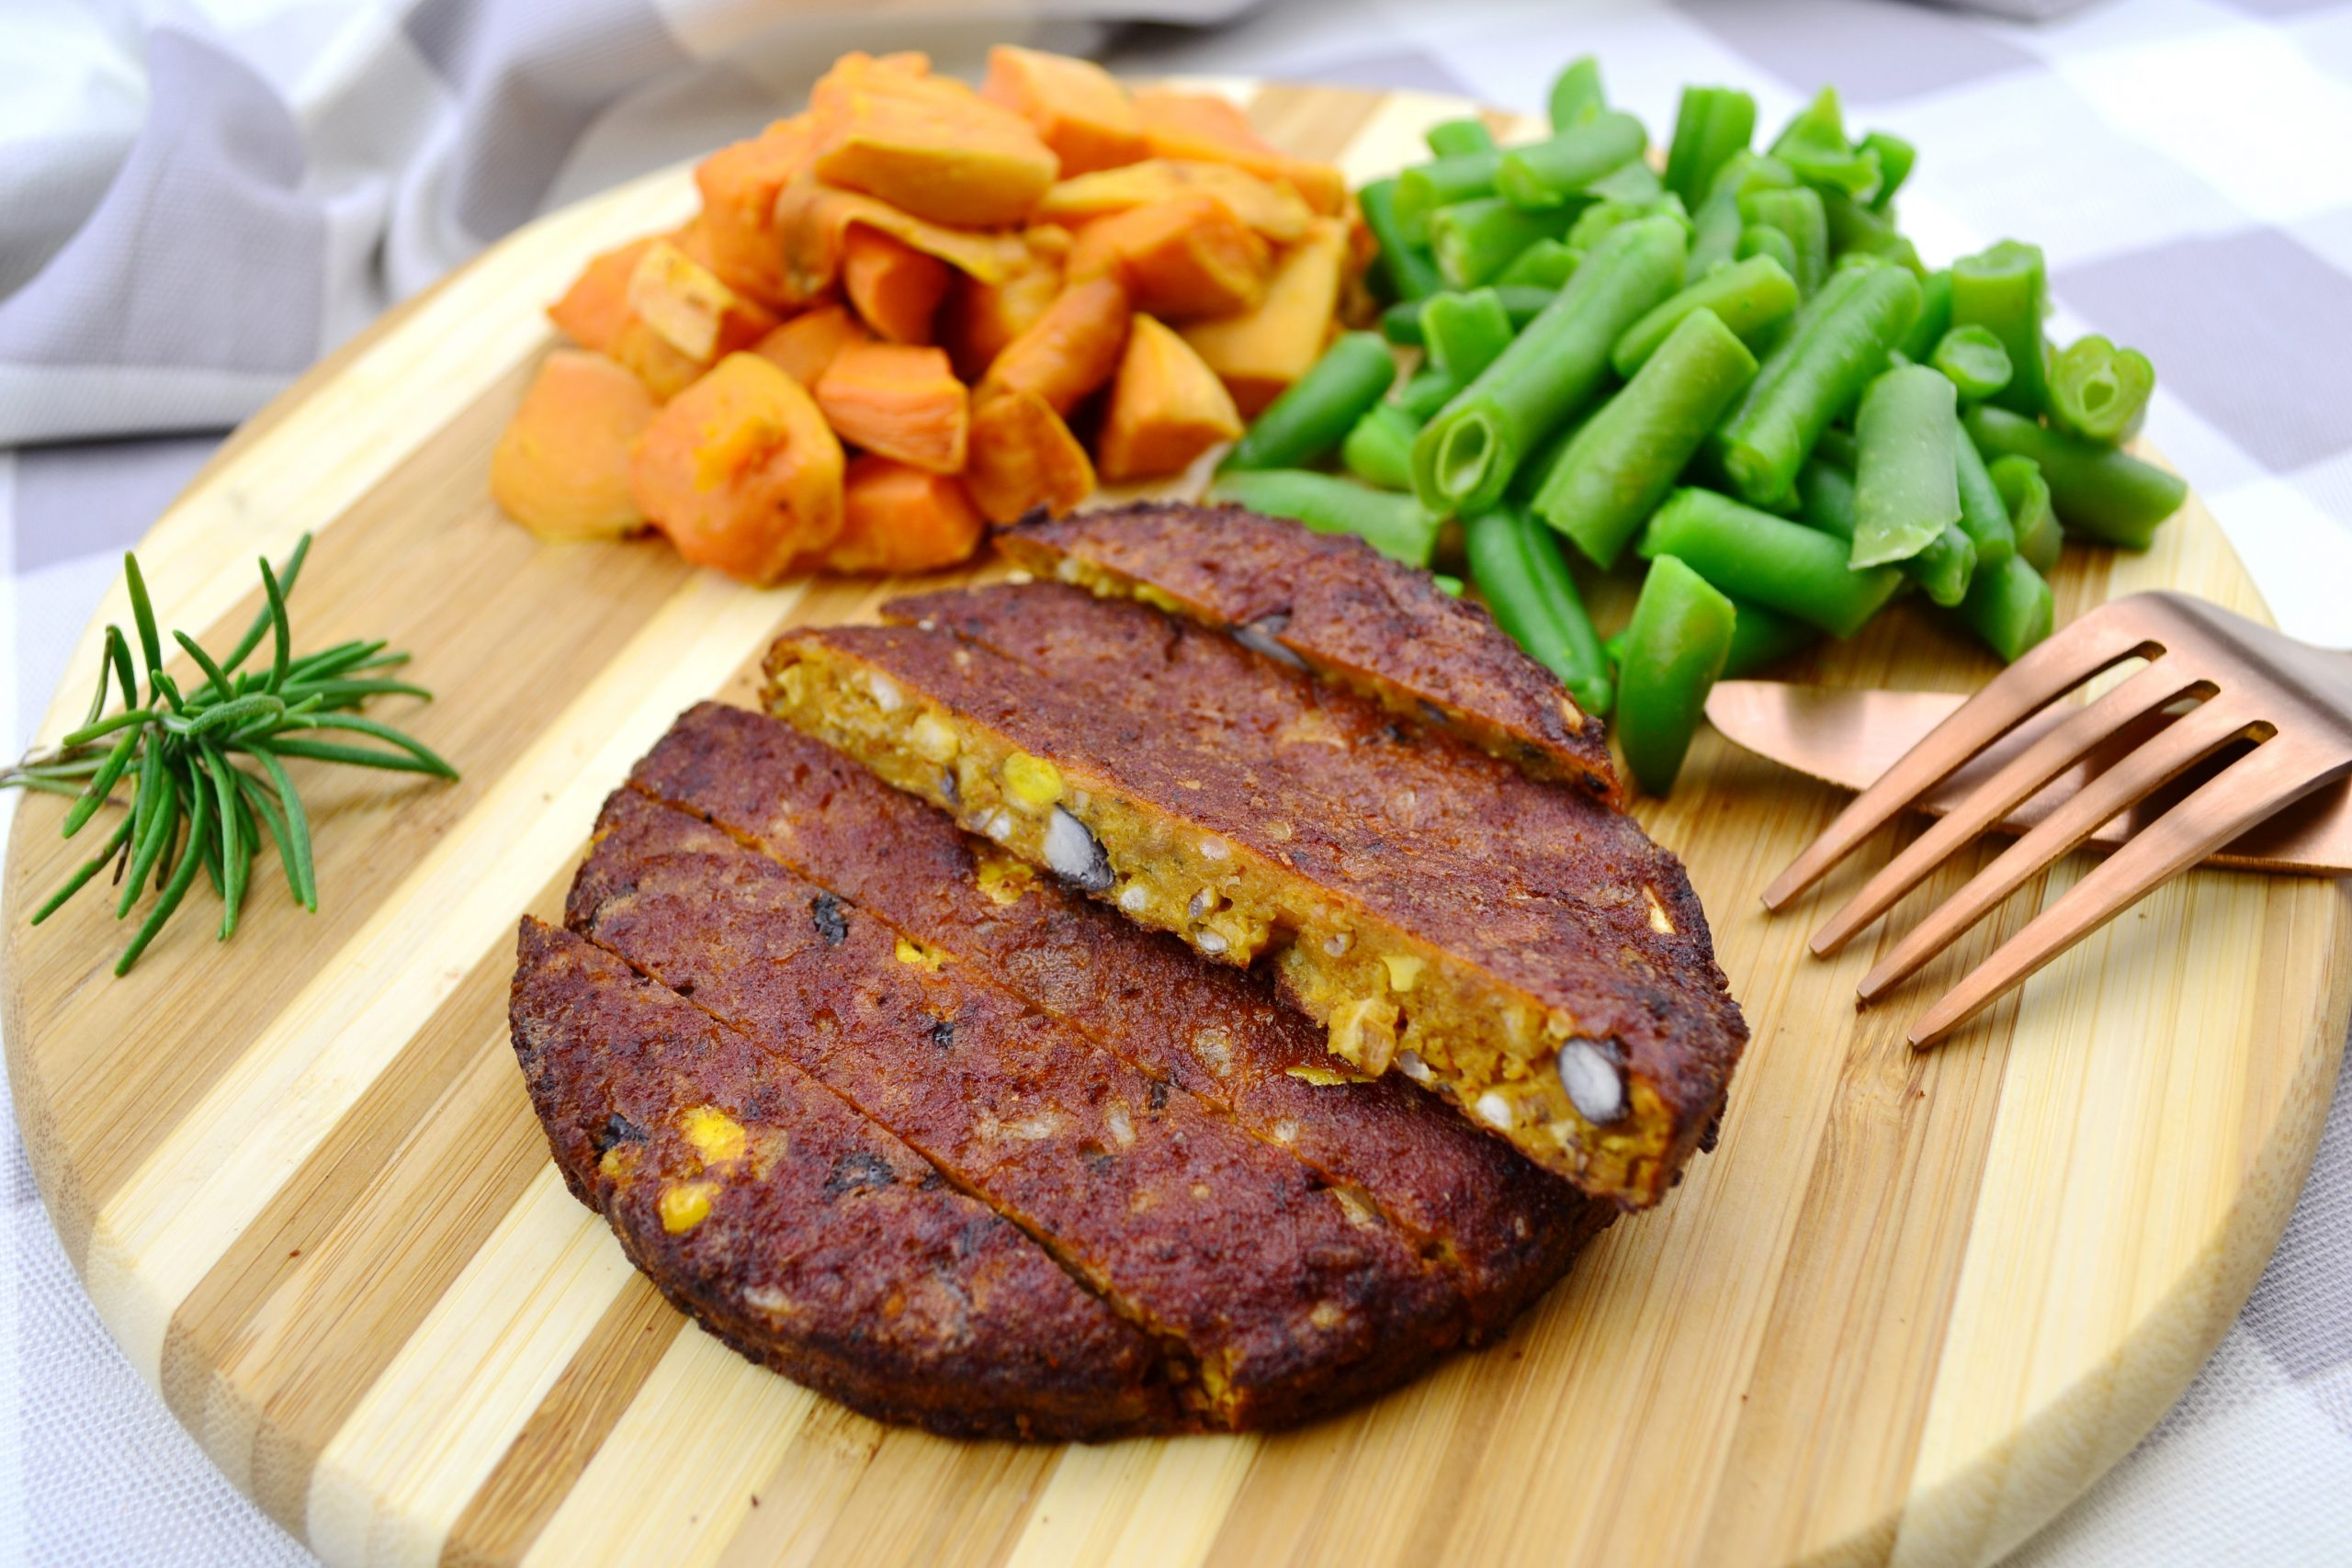 Vegetable Protein Patty 8oz